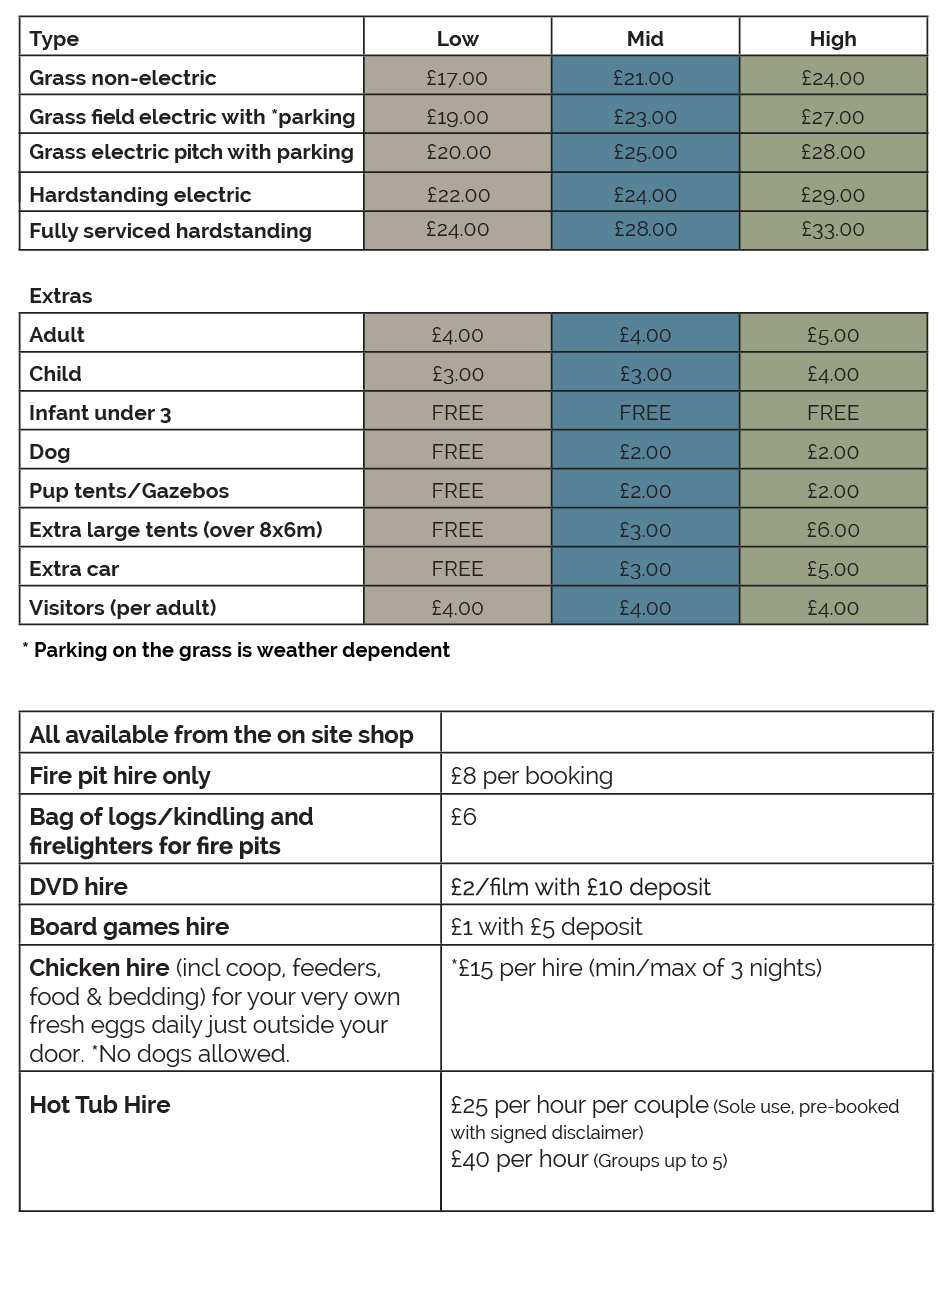 Camping-pricelist-2019